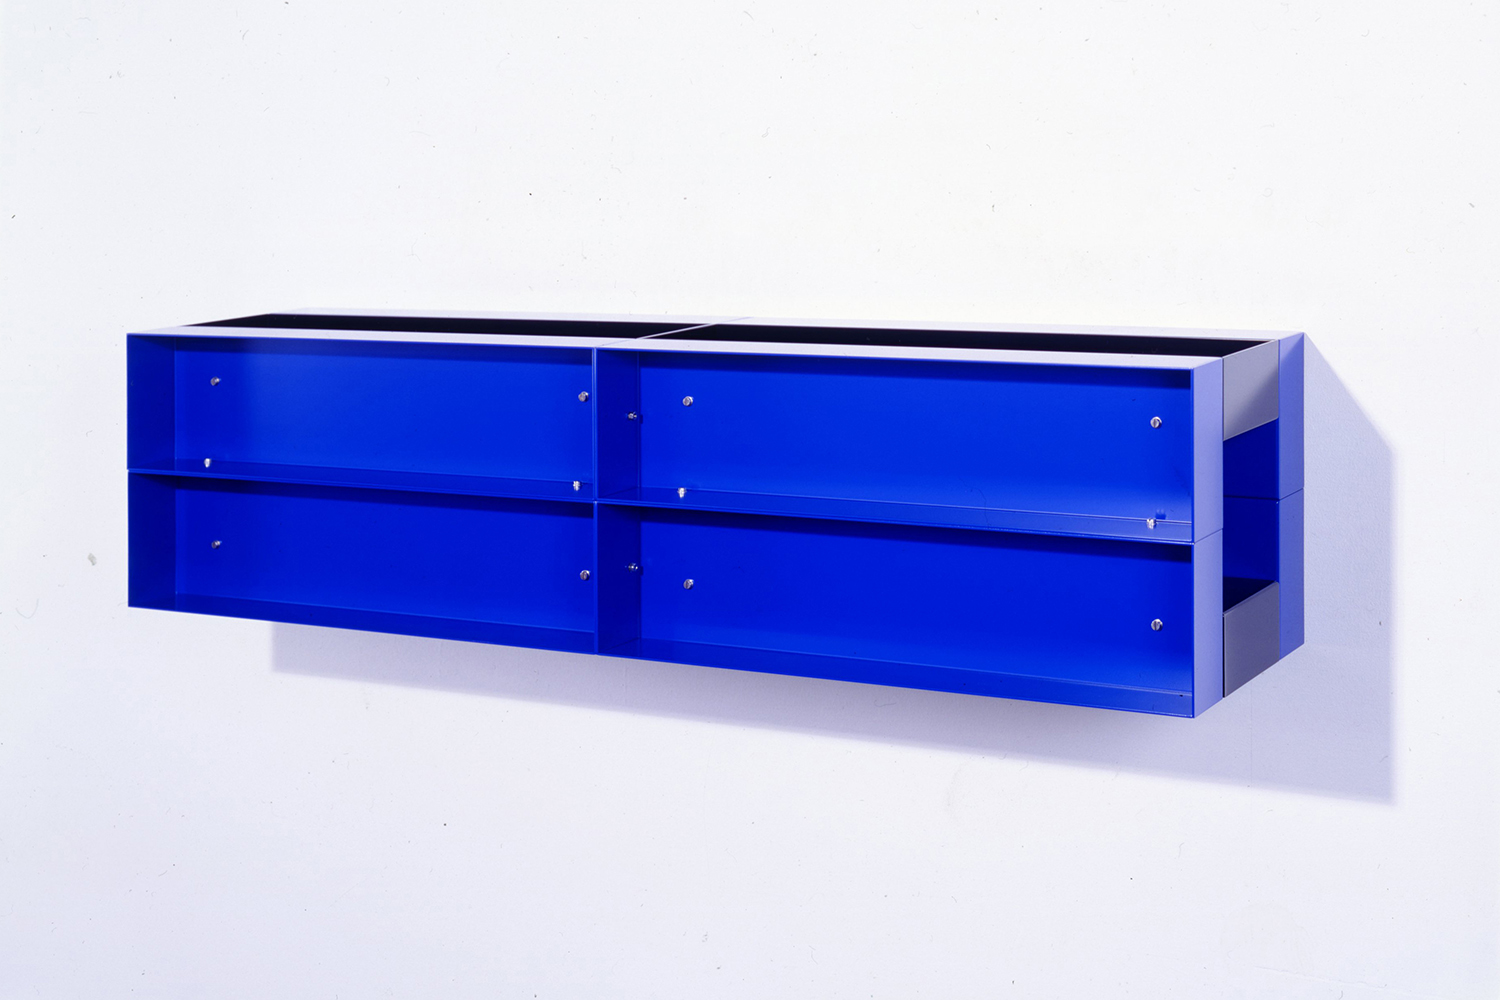 Untitled 1989|painted aluminum wall sculpture|30 x 120 x 30cm